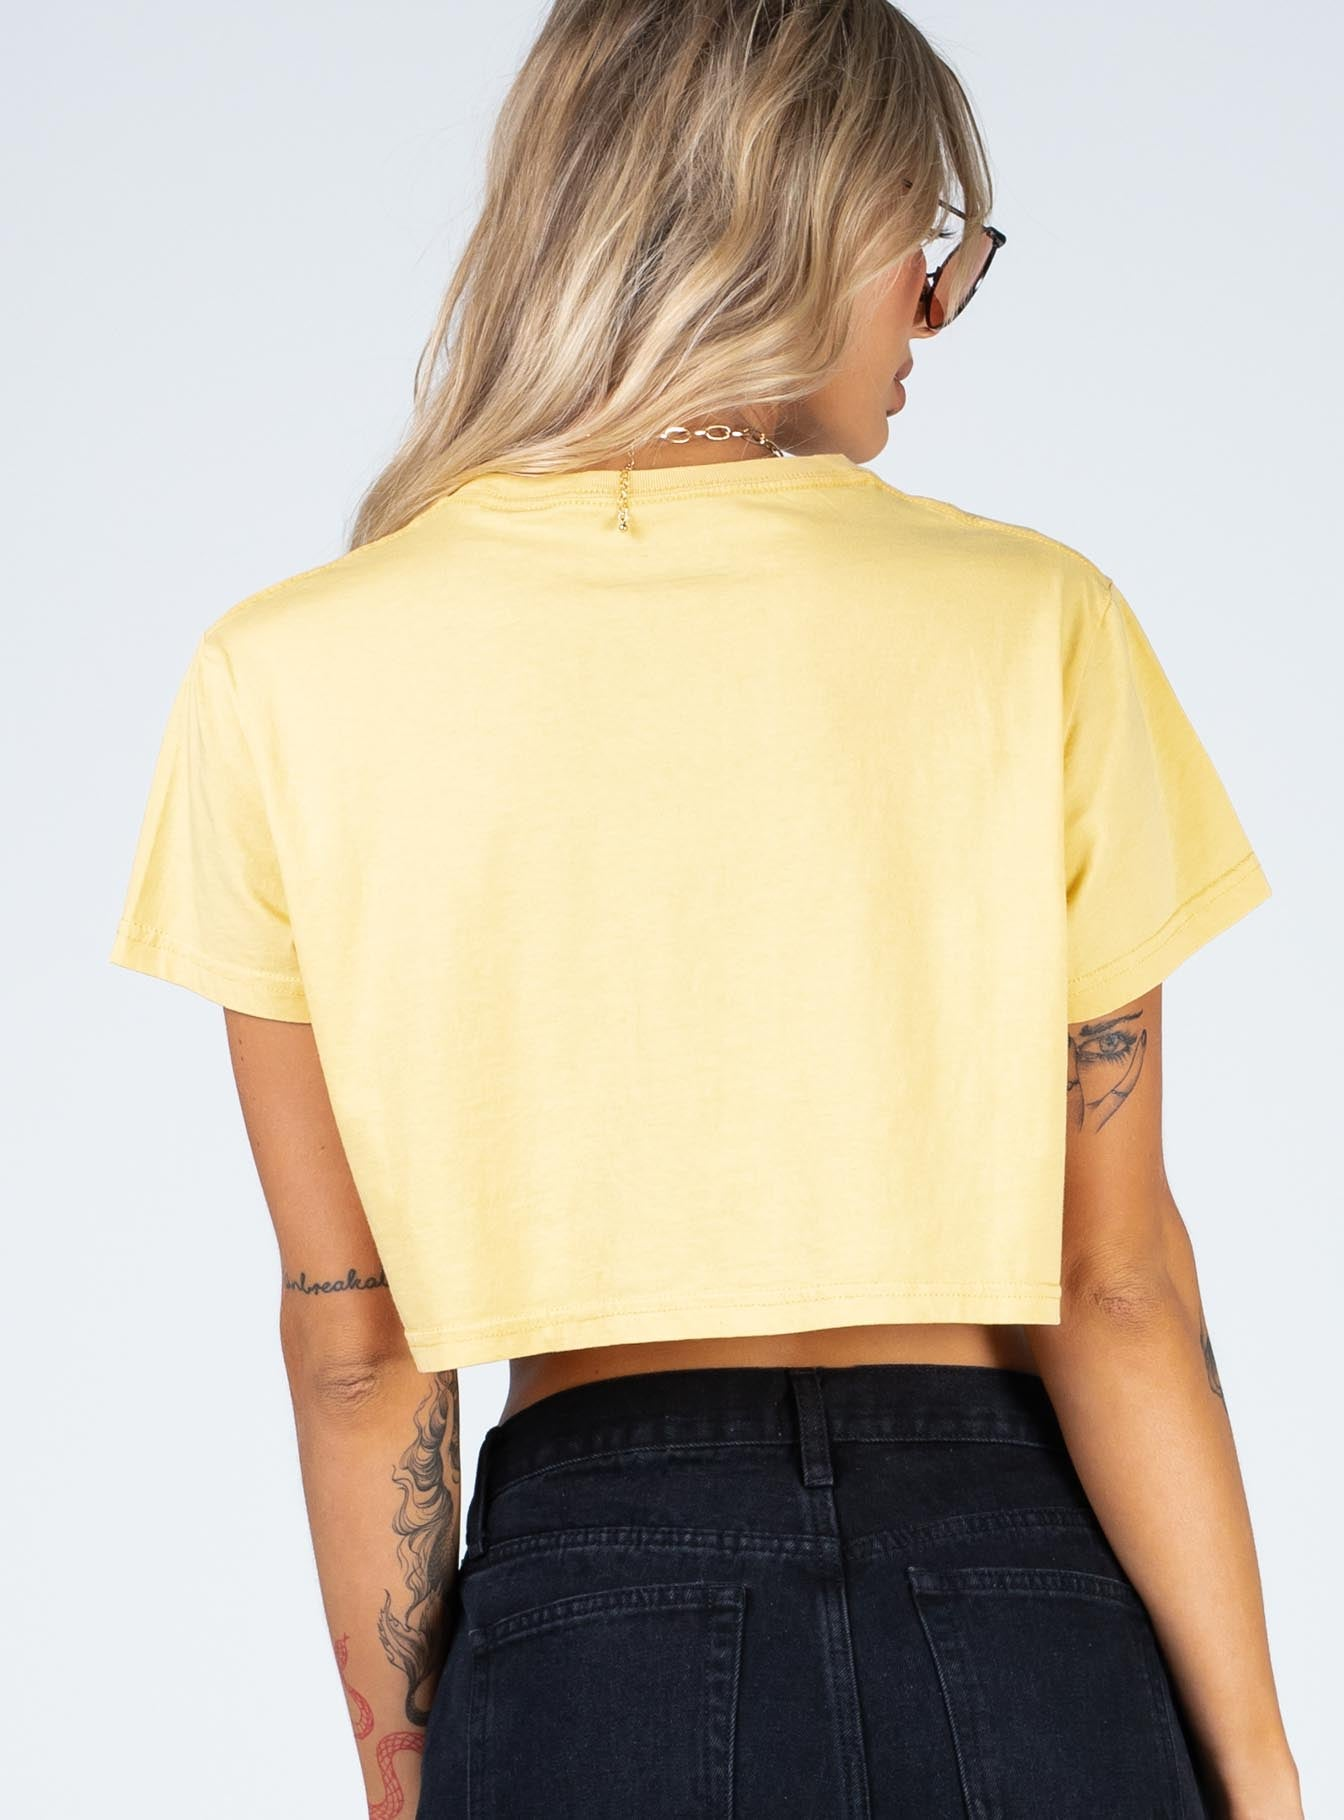 Rolling Stones Pink Tongue Crop Tee Yellow